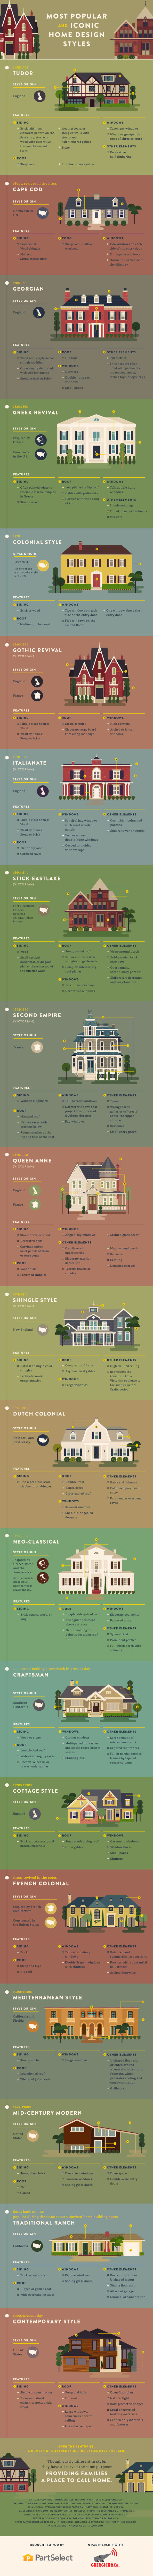 Classical Home Designs for Modern Styling - Infographic